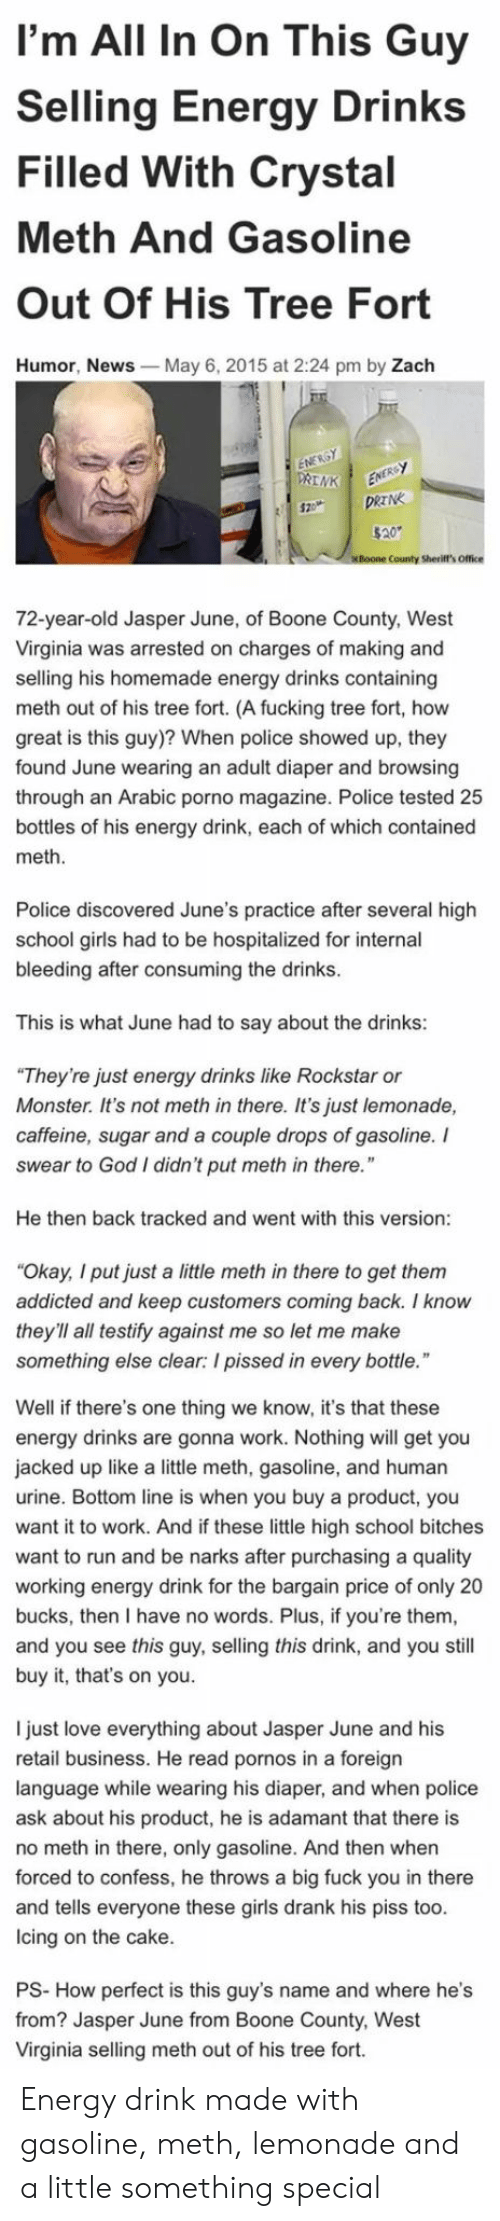 """adamant: I'm All In On This Guy  Selling Energy Drinks  Filled With Crystal  Meth And Gasoline  Out Of His Tree Fort  Humor, News  May 6, 2015 at 2:24 pm by Zach  County Sherift's Office  72-year-old Jasper June, of Boone County, West  Virginia was arrested on charges of making and  selling his homemade energy drinks containing  meth out of his tree fort. (A fucking tree fort, how  great is this guy)? When police showed up, they  found June wearing an adult diaper and browsing  through an Arabic porno magazine. Police tested 25  bottles of his energy drink, each of which contained  meth  Police discovered June's practice after several high  school girls had to be hospitalized for internal  bleeding after consuming the drinks  This is what June had to say about the drinks:  They're just energy drinks like Rockstar or  Monster. It's not meth in there. It's just lemonade,  caffeine, sugar and a couple drops of gasoline. I  swear to God I didn't put meth in there.""""  He then back tracked and went with this version  Okay, I put just a little meth in there to get them  addicted and keep customers coming back. I know  they'll all testify against me so let me make  something else clear: I pissed in every bottle  Well if there's one thing we know, it's that these  energy drinks are gonna work. Nothing will get you  jacked up like a little meth, gasoline, and human  urine. Bottom line is when you buy a product, you  want it to work. And if these little high school bitches  want to run and be narks after purchasing a quality  working energy drink for the bargain price of only 20  bucks, then I have no words. Plus, if you're them  and you see this guy, selling this drink, and you still  buy it, that's on you.  I just love everything about Jasper June and his  retail business. He read pornos in a foreign  language while wearing his diaper, and when police  ask about his product, he is adamant that there is  no meth in there, only gasoline. And then when  forced to confess, he thr"""